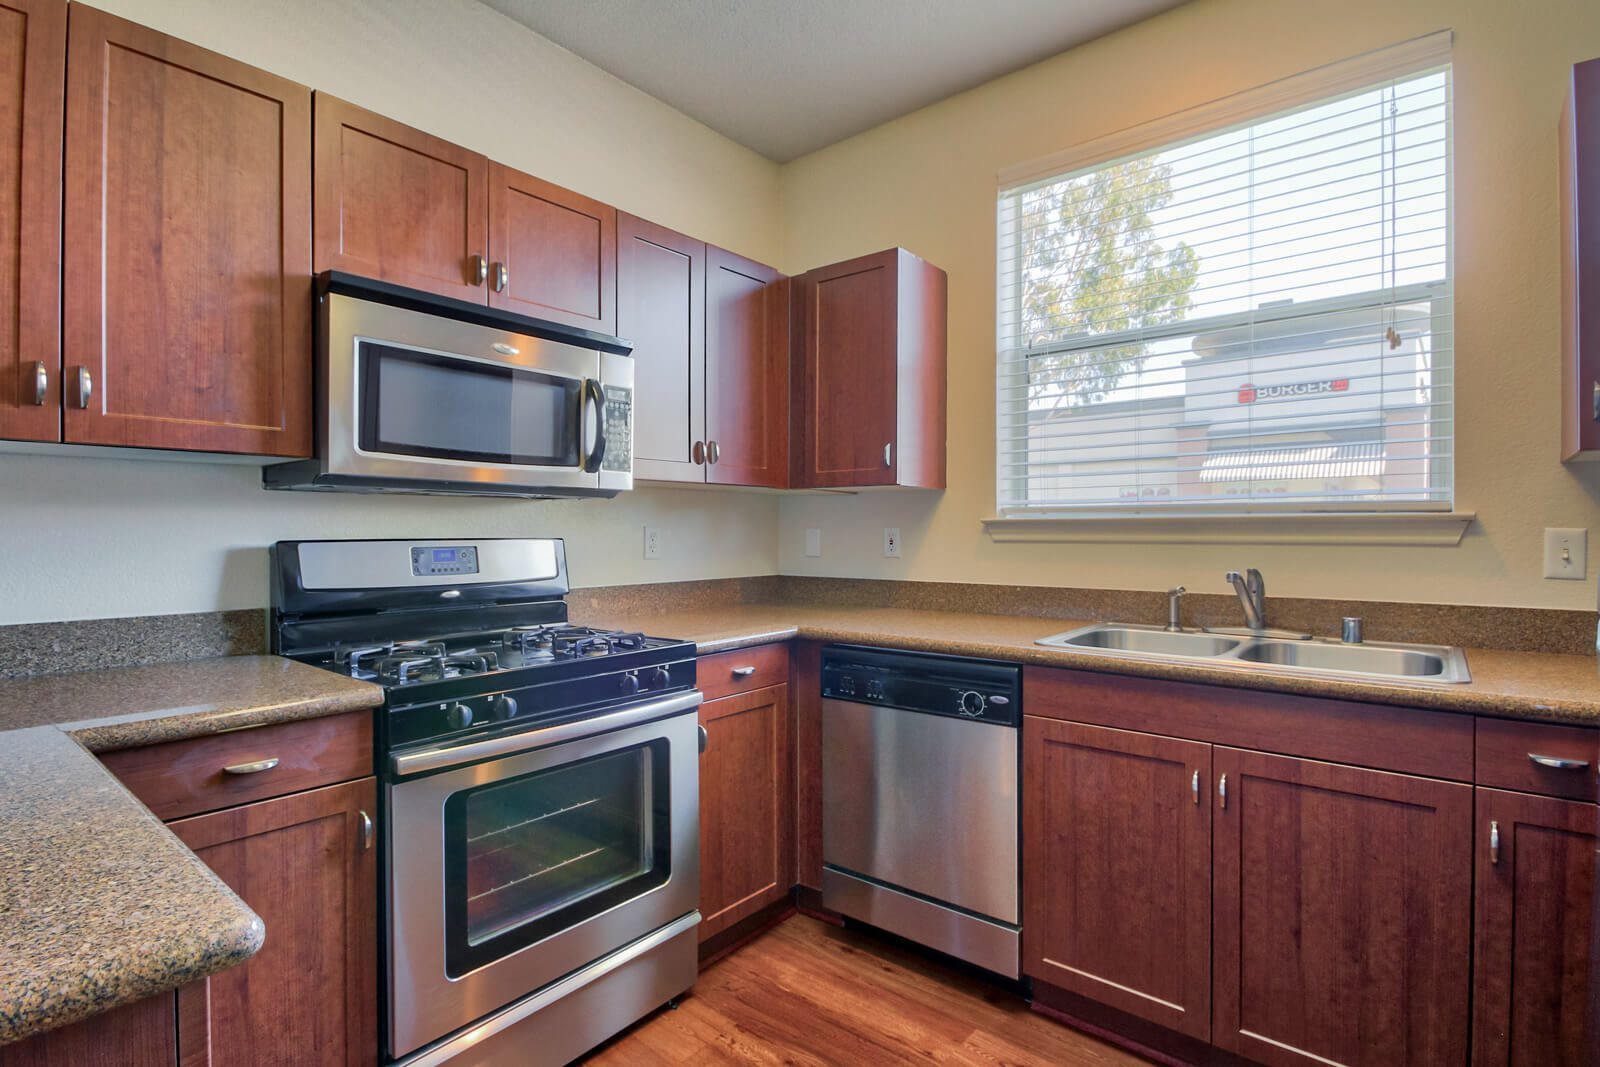 Upscale Kitchens with Granite Countertops, Cherry Oak Cabinets, and Stainless Steel Appliances at Windsor at Main Place, Orange, CA